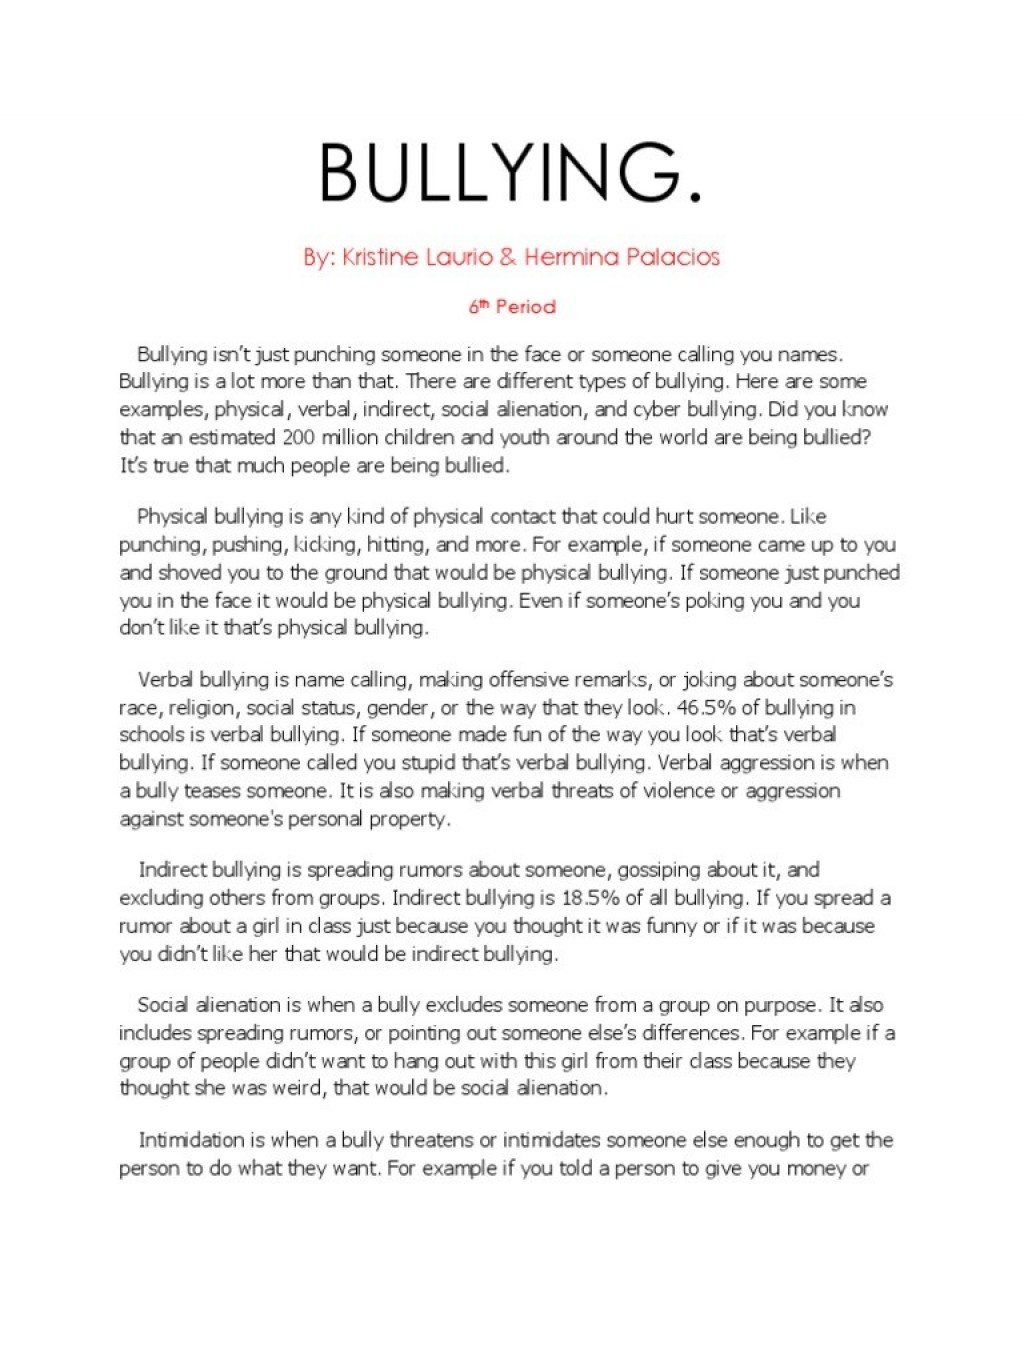 009 Research Paper Cyberbullying Example Uncategorized Bullying Essays Essay Breathtaking Sample Large